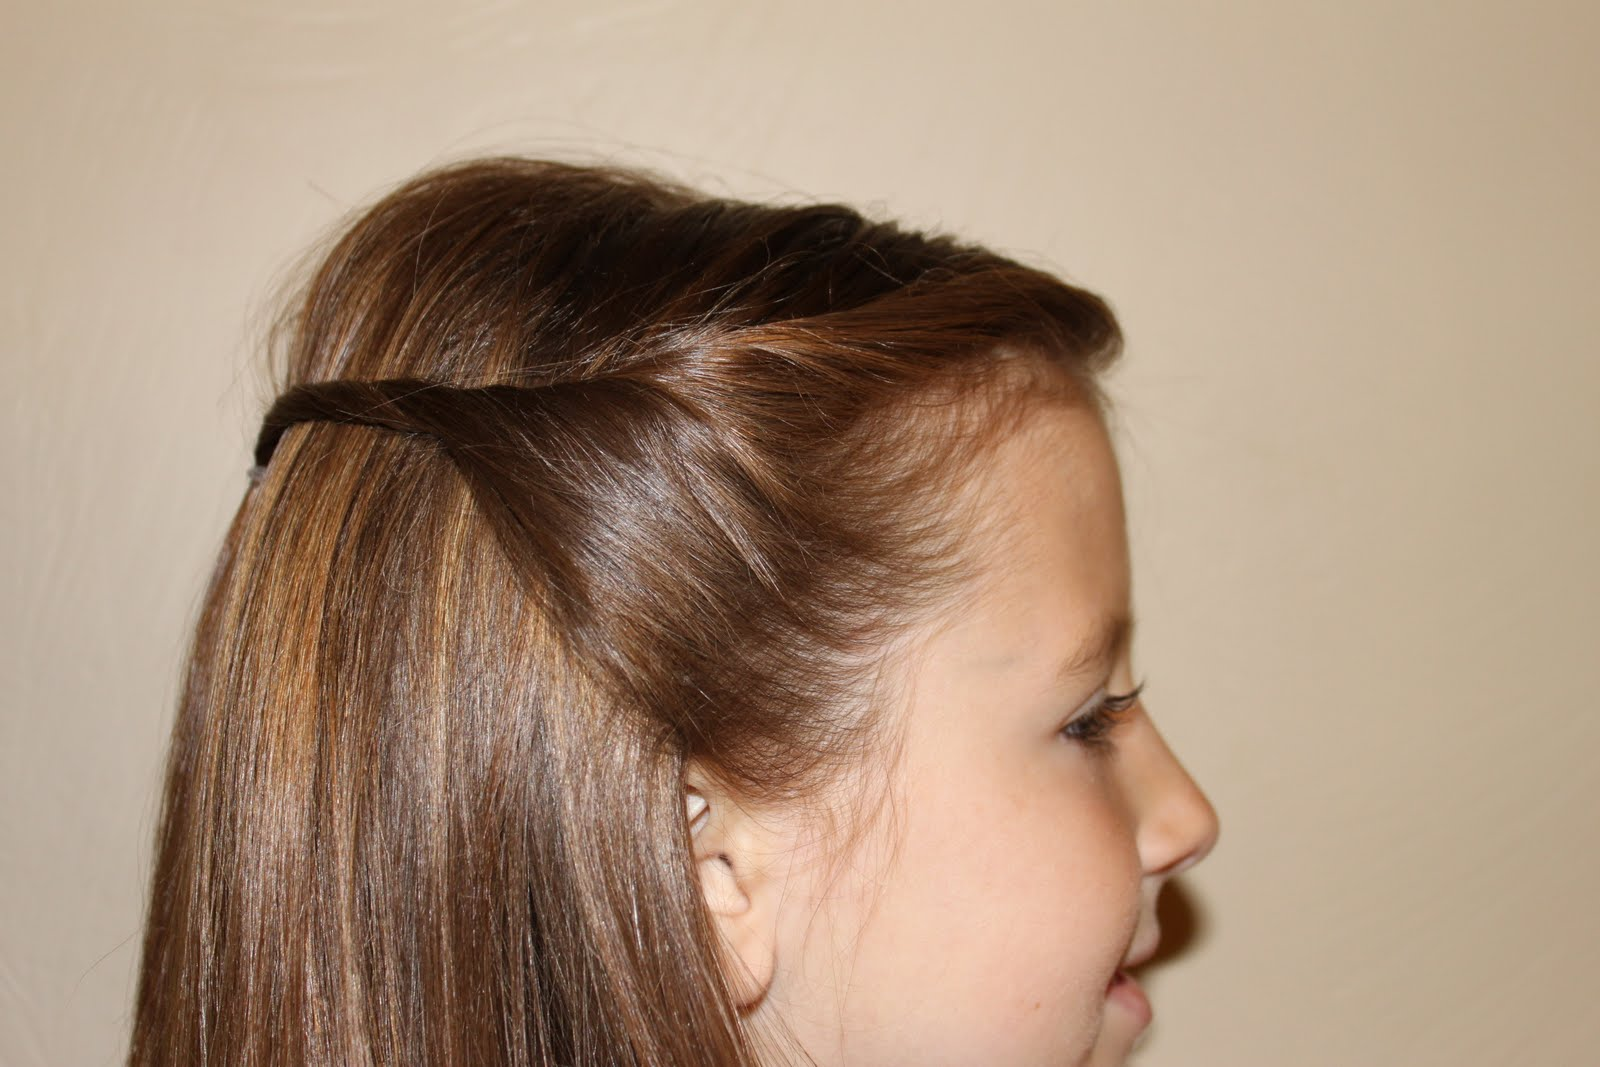 hairstyles for girls.. the wright hair: sides pulled back with twist